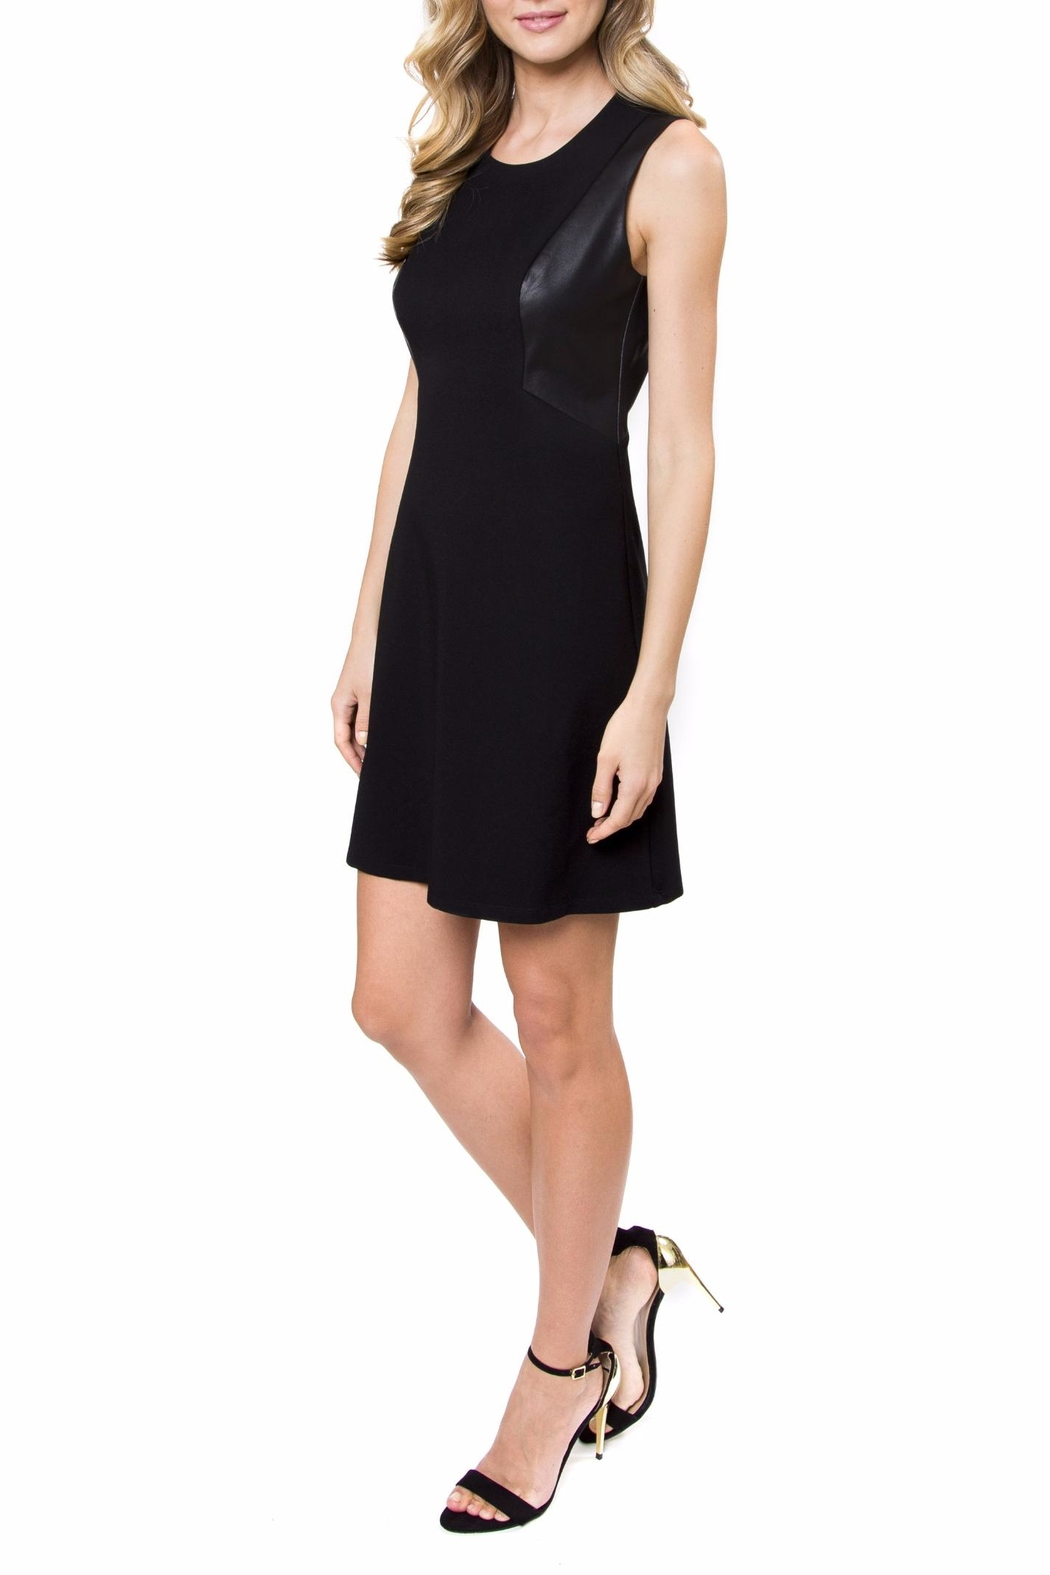 Julie Brown Amanda Leather Dress - Front Cropped Image